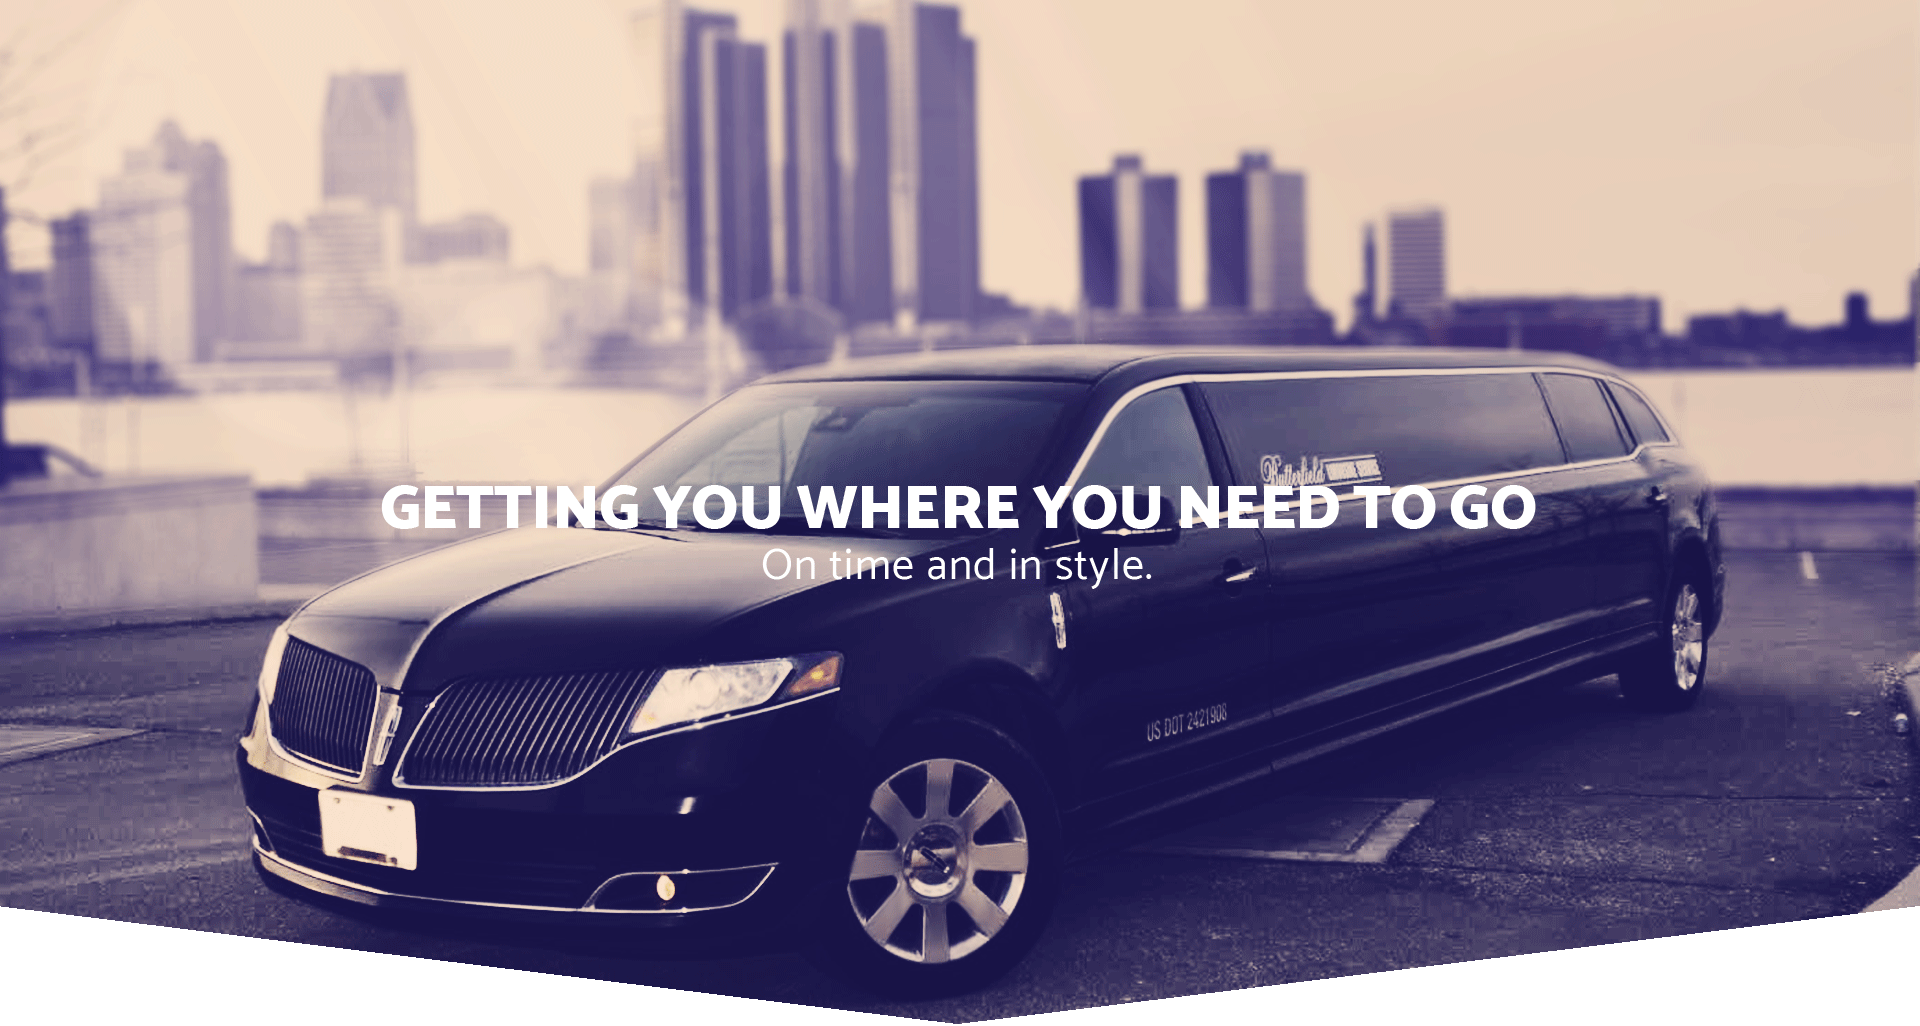 limo services in Toronto